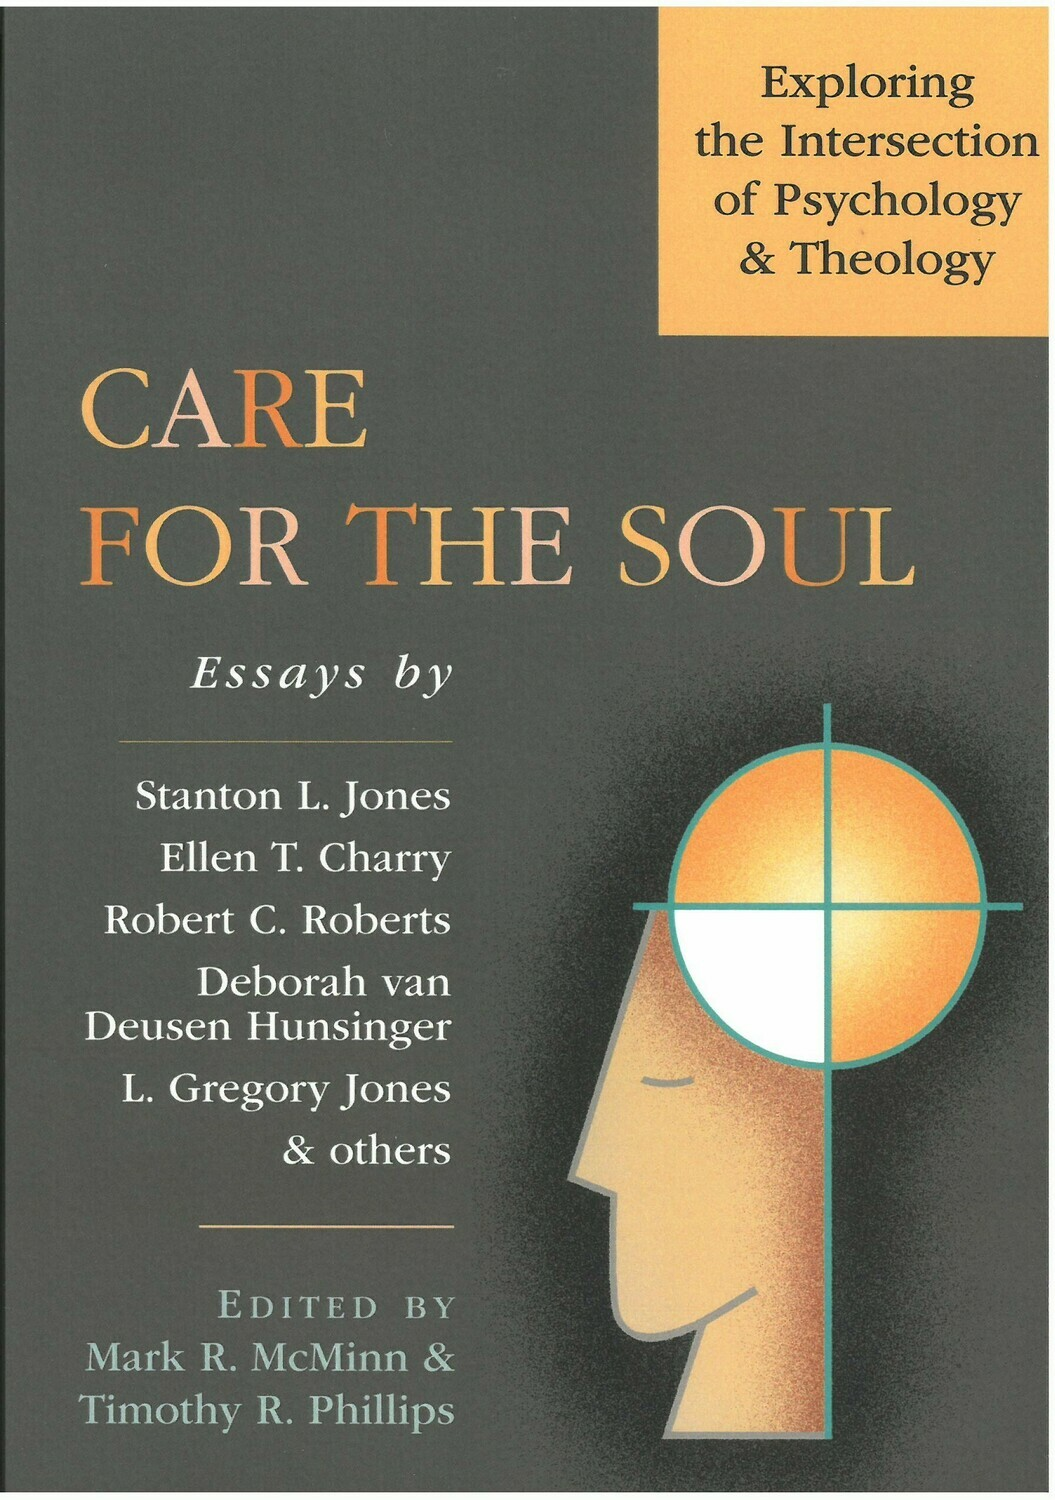 Care for the Soul: exploring the intersection of psychology and theology